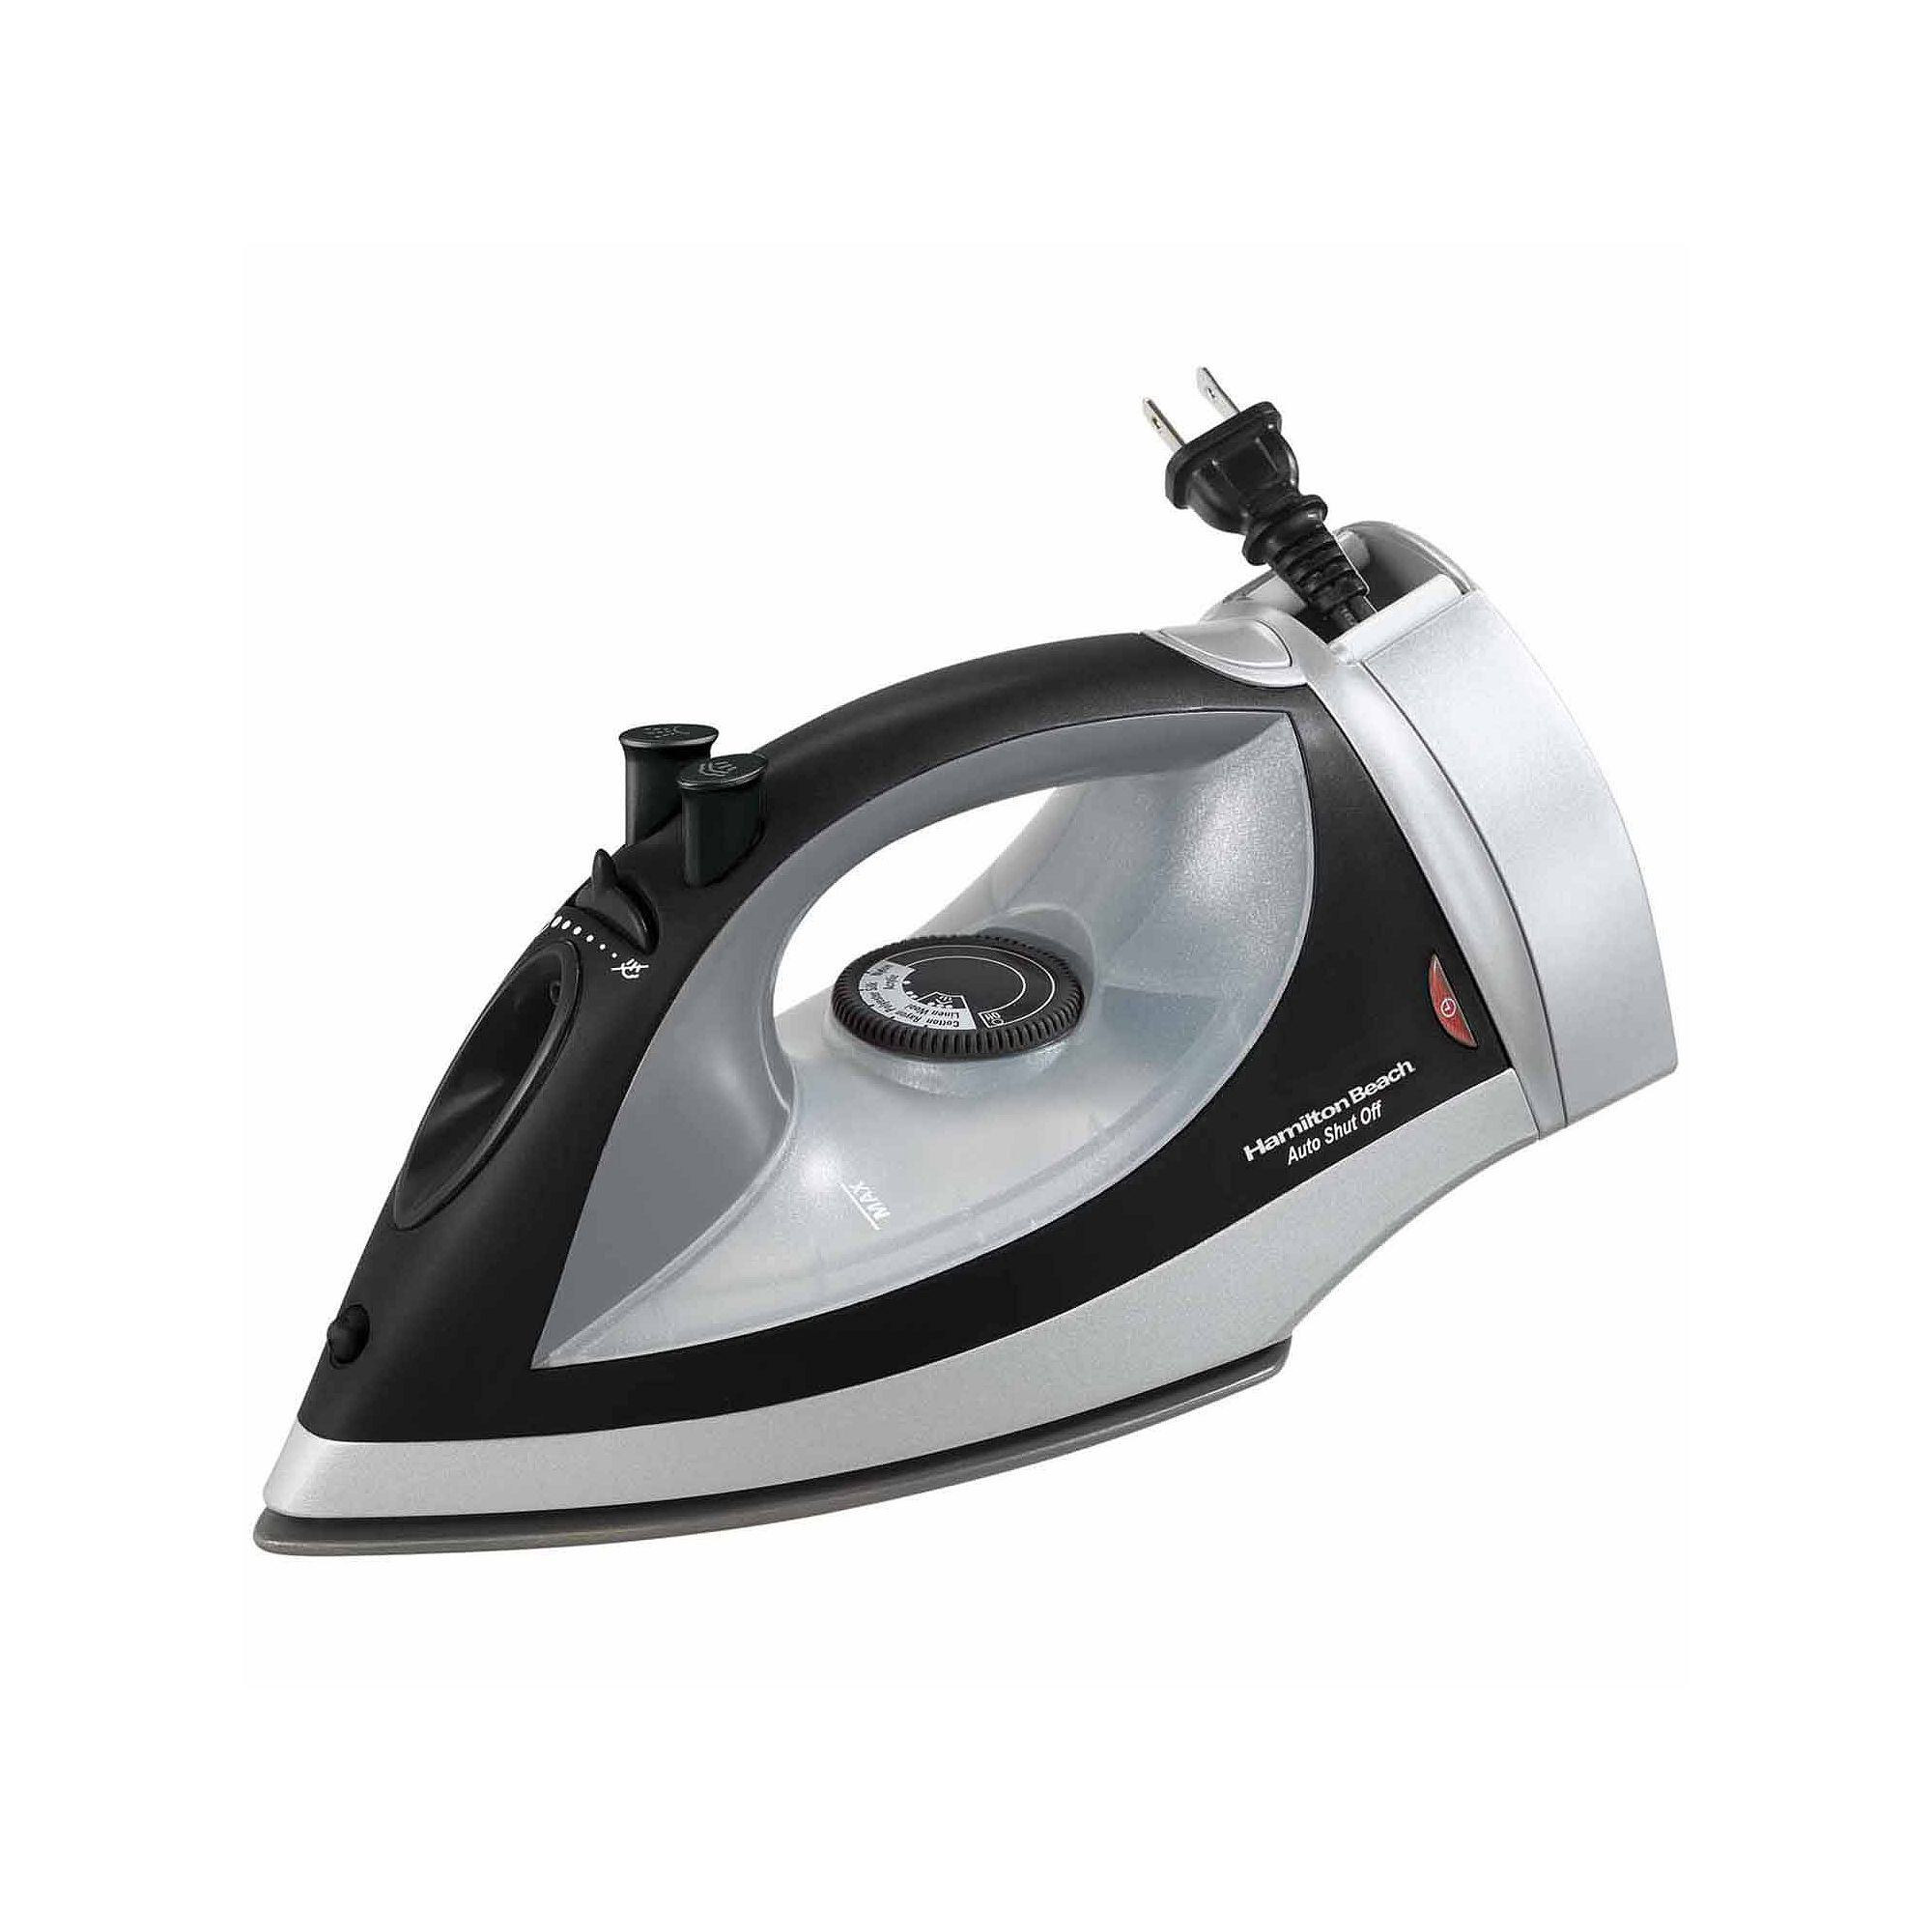 Hamilton Beach Auto-Off Iron with Retractable Cord